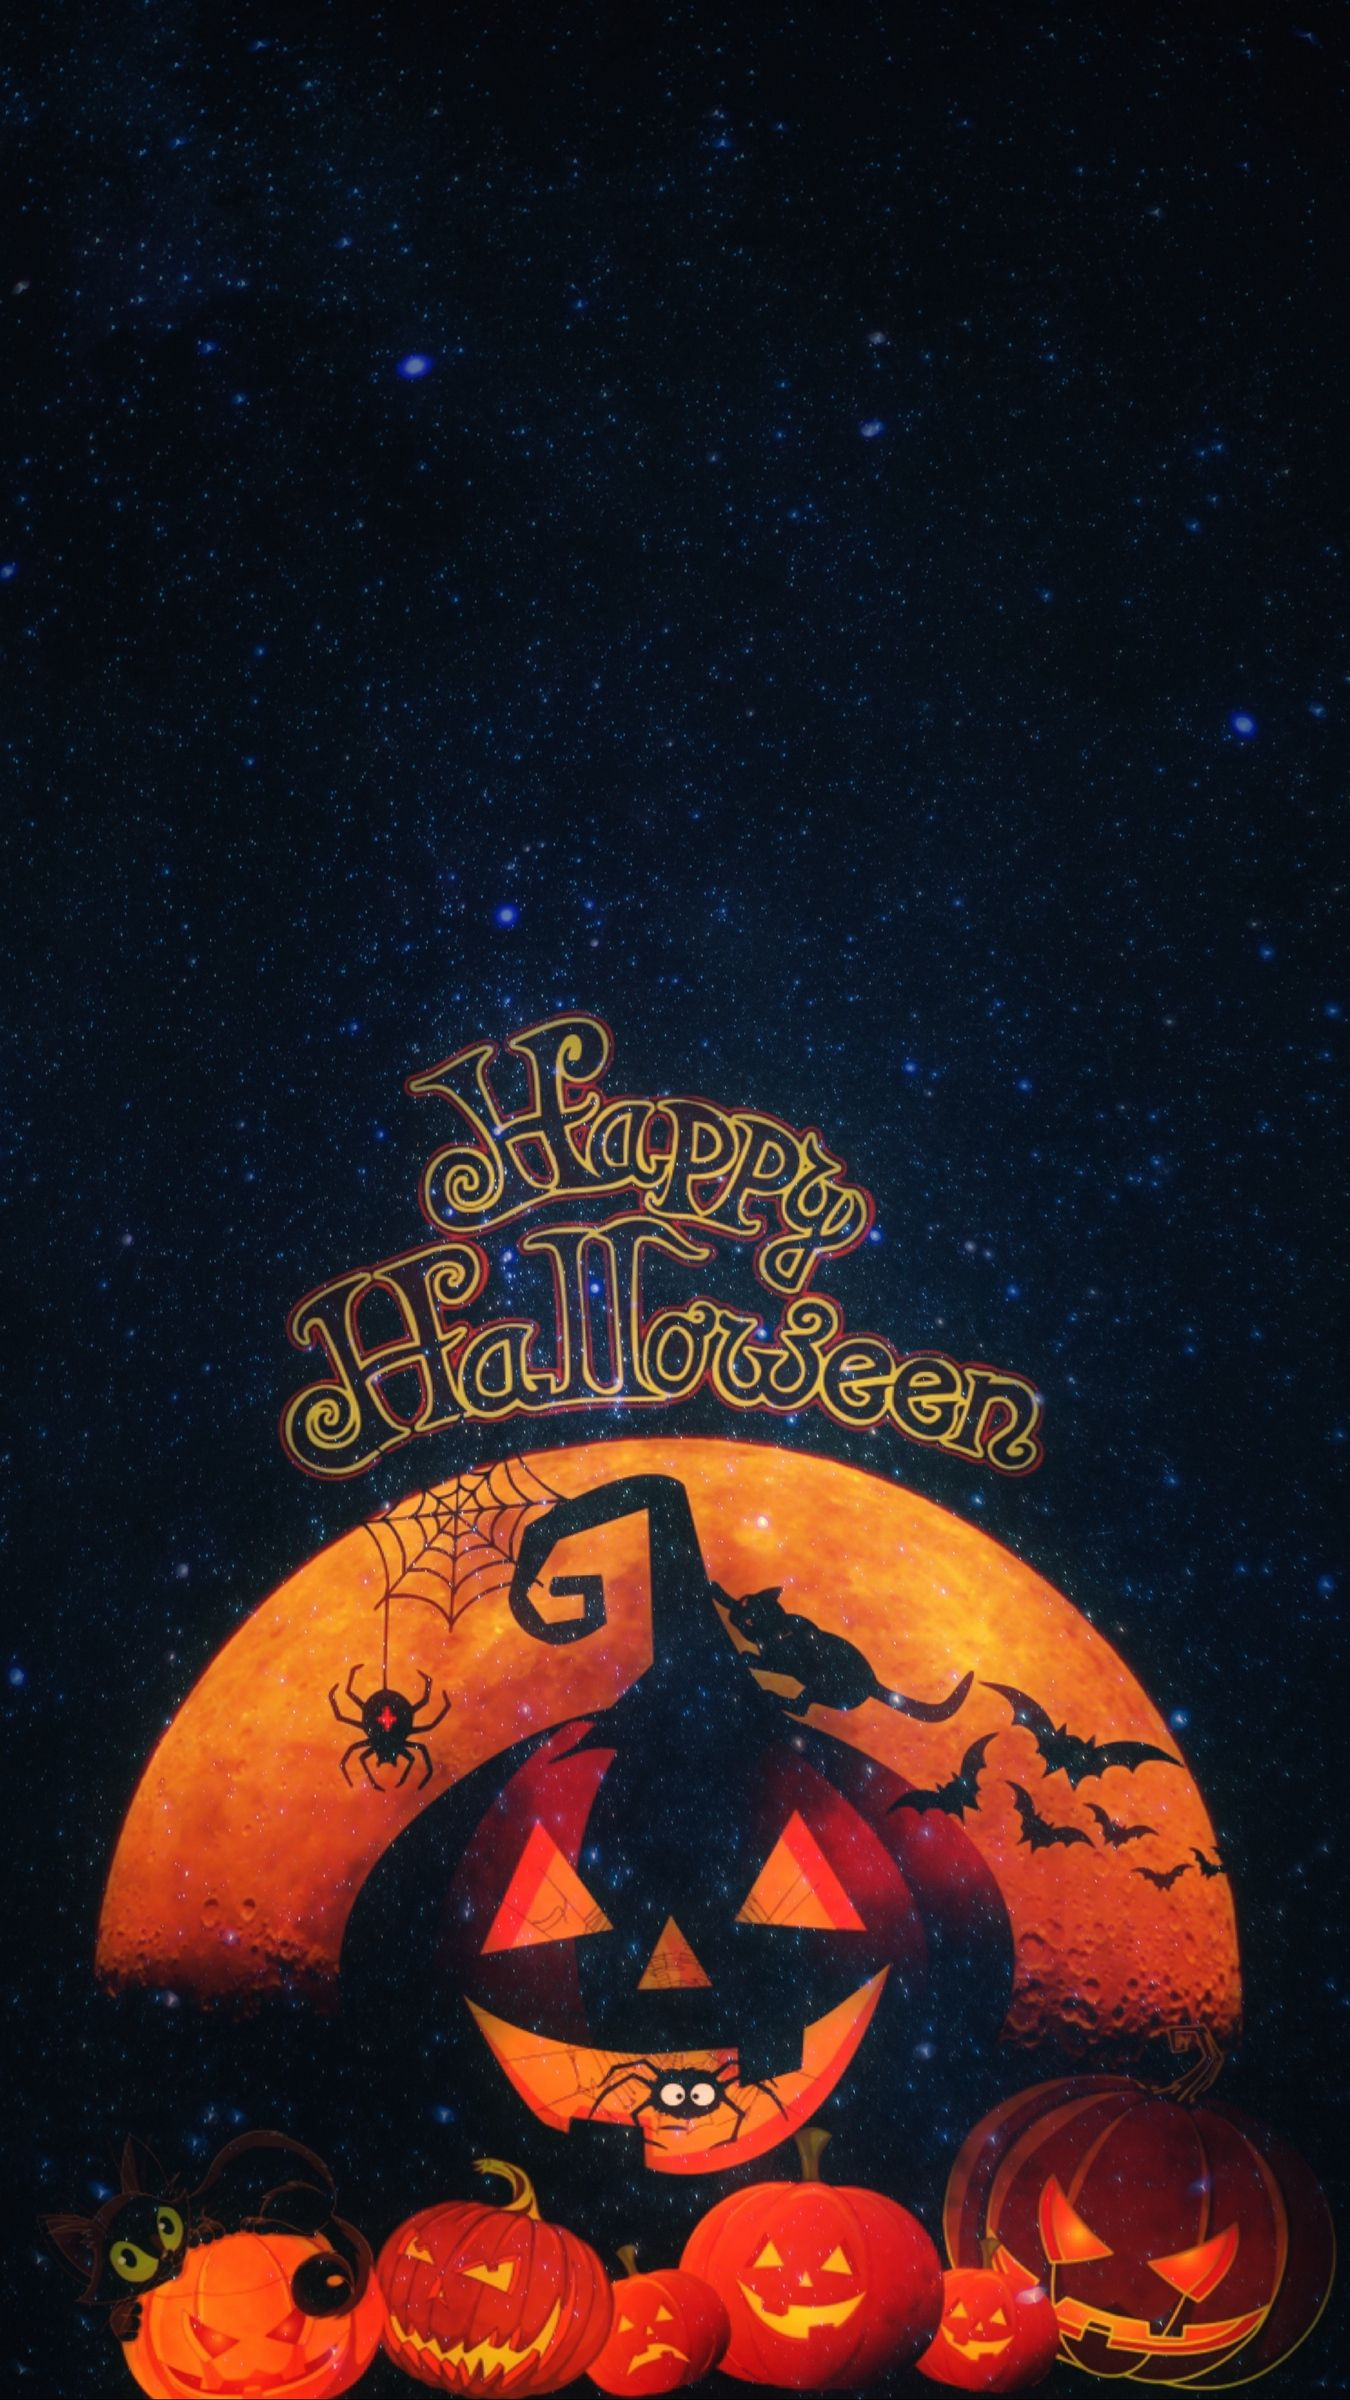 30 Halloween Wallpaper Cat Halloween Wallpaper Free Halloween Wallpaper Free Halloween Pictures